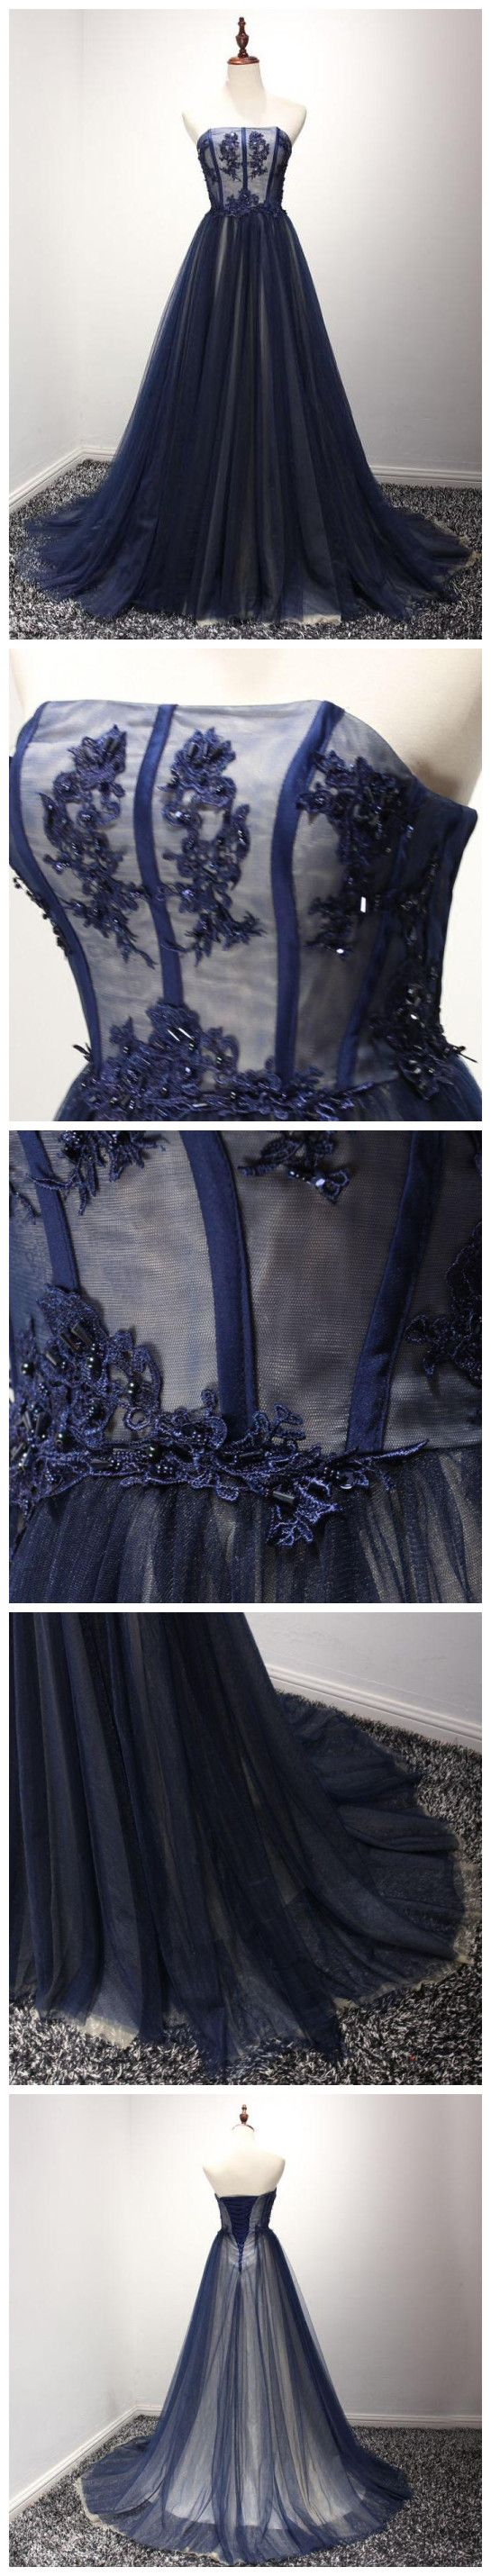 A-LINE, STRAPLESS, DARK NAVY, TULLE, SIMPLE PROM DRESS, EVENING DRESS